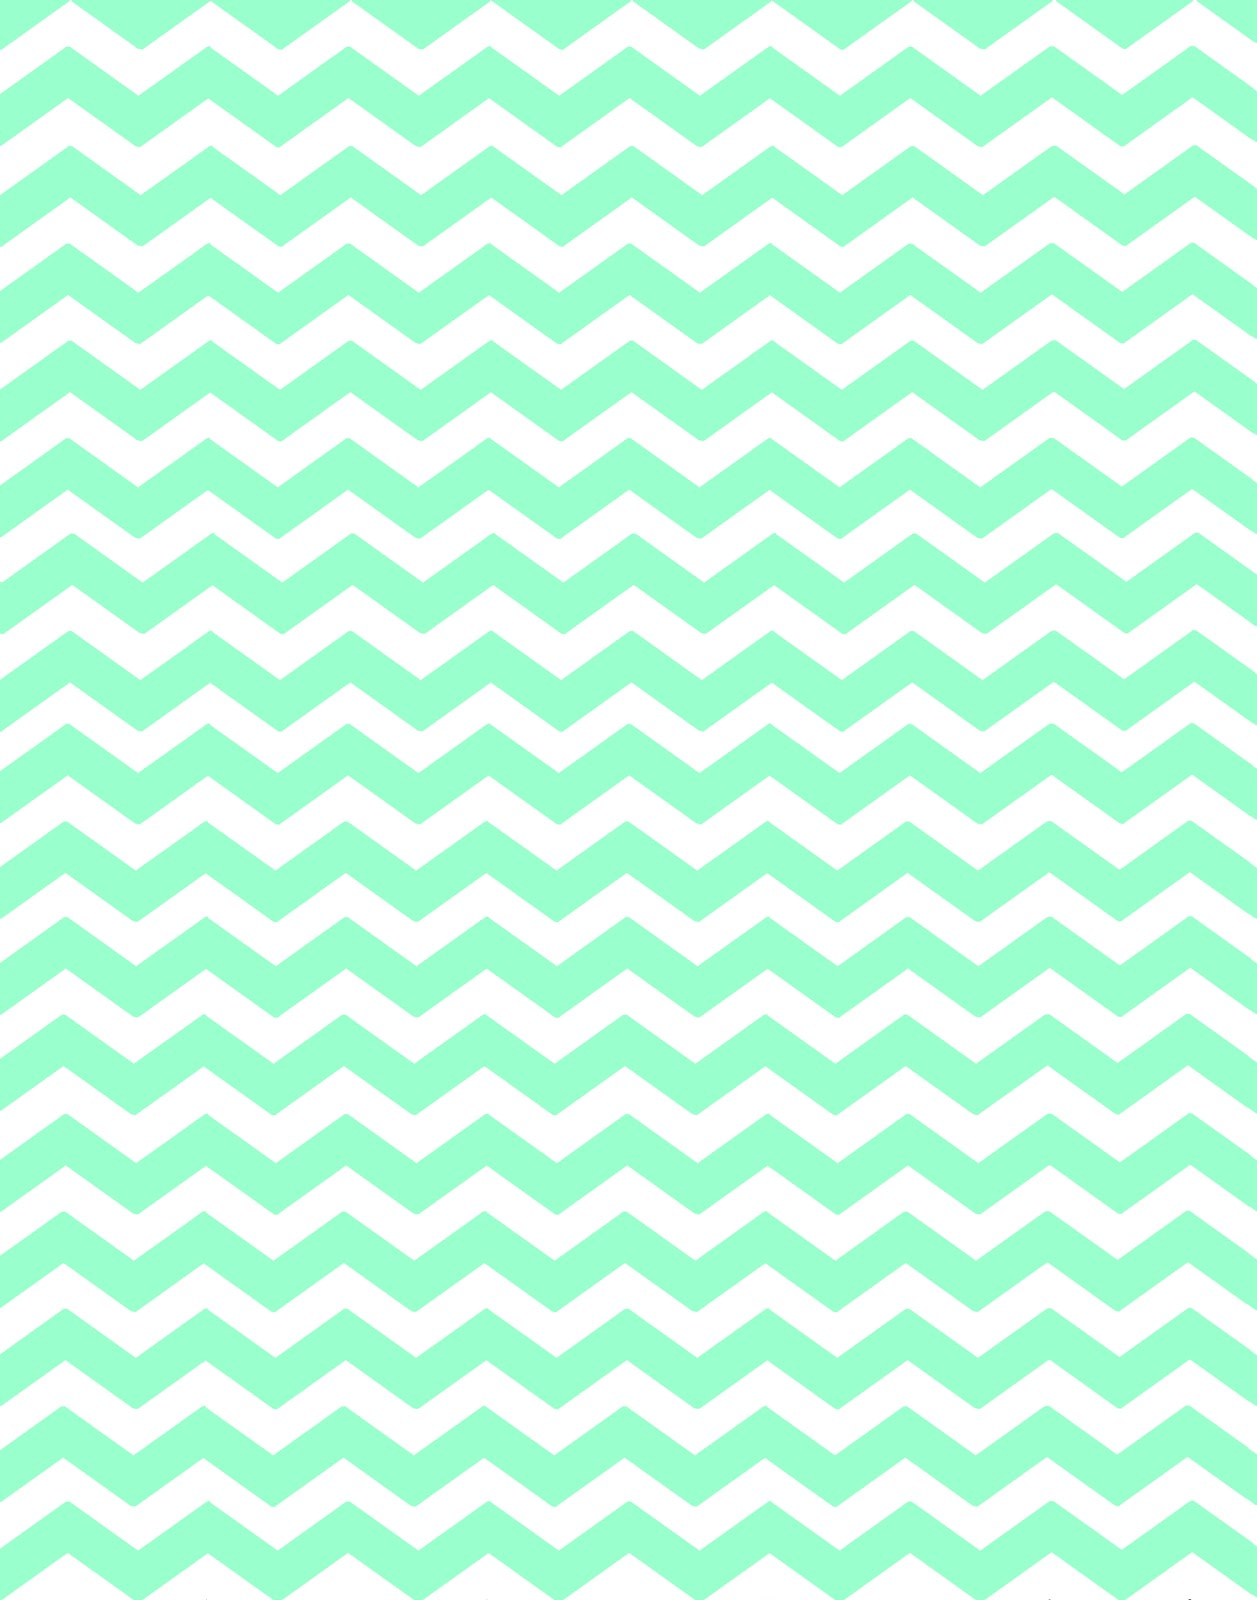 wallpapers for iphone 4 girly